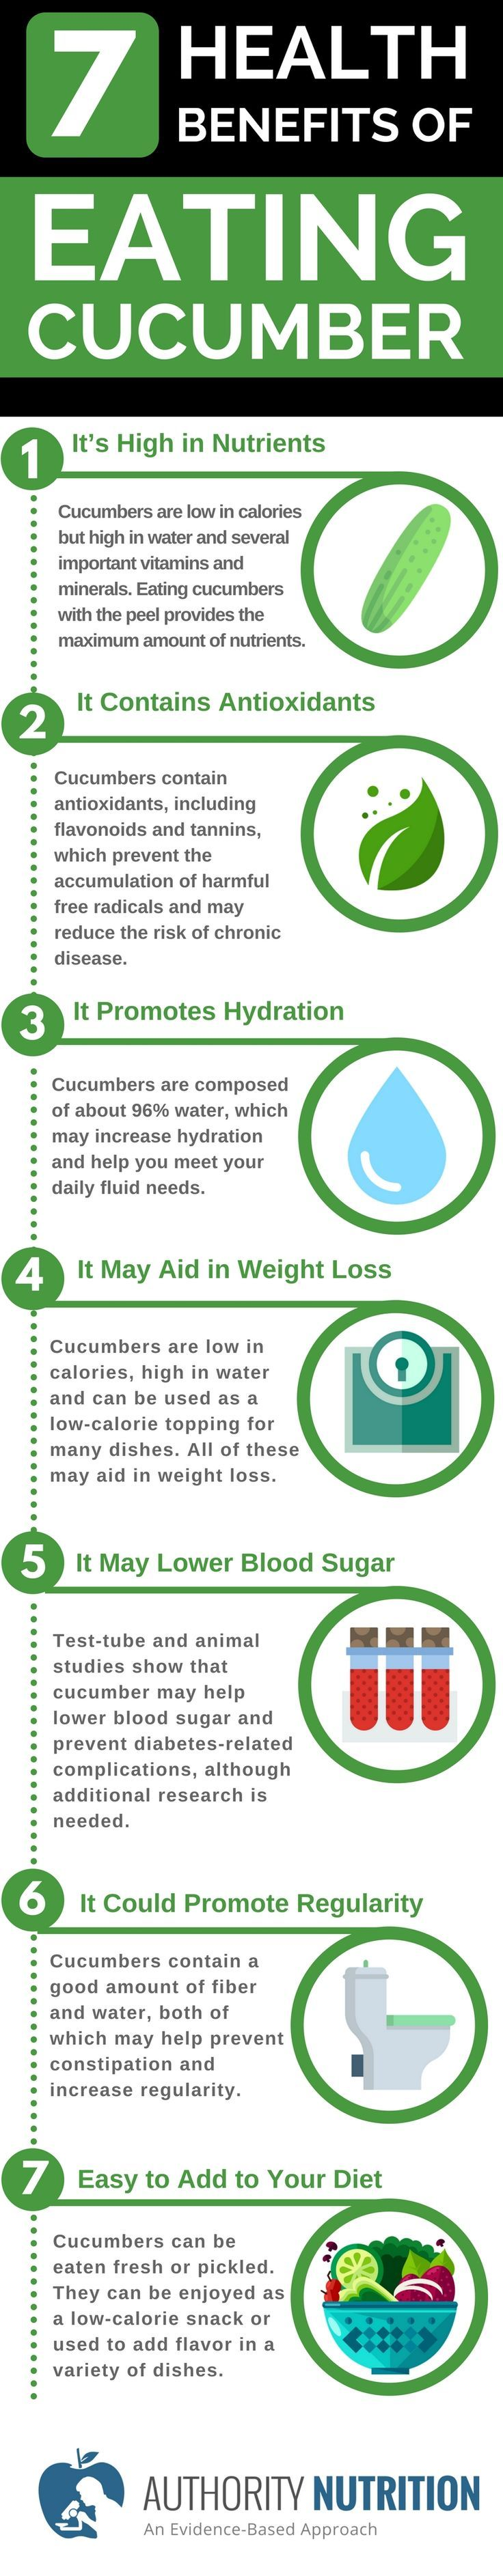 Cucumbers are low in calories but high in beneficial nutrients that may lead to various health benefits. Here are 7 health benefits of eating cucumber: https://authoritynutrition.com/7-health-benefits-of-cucumber/